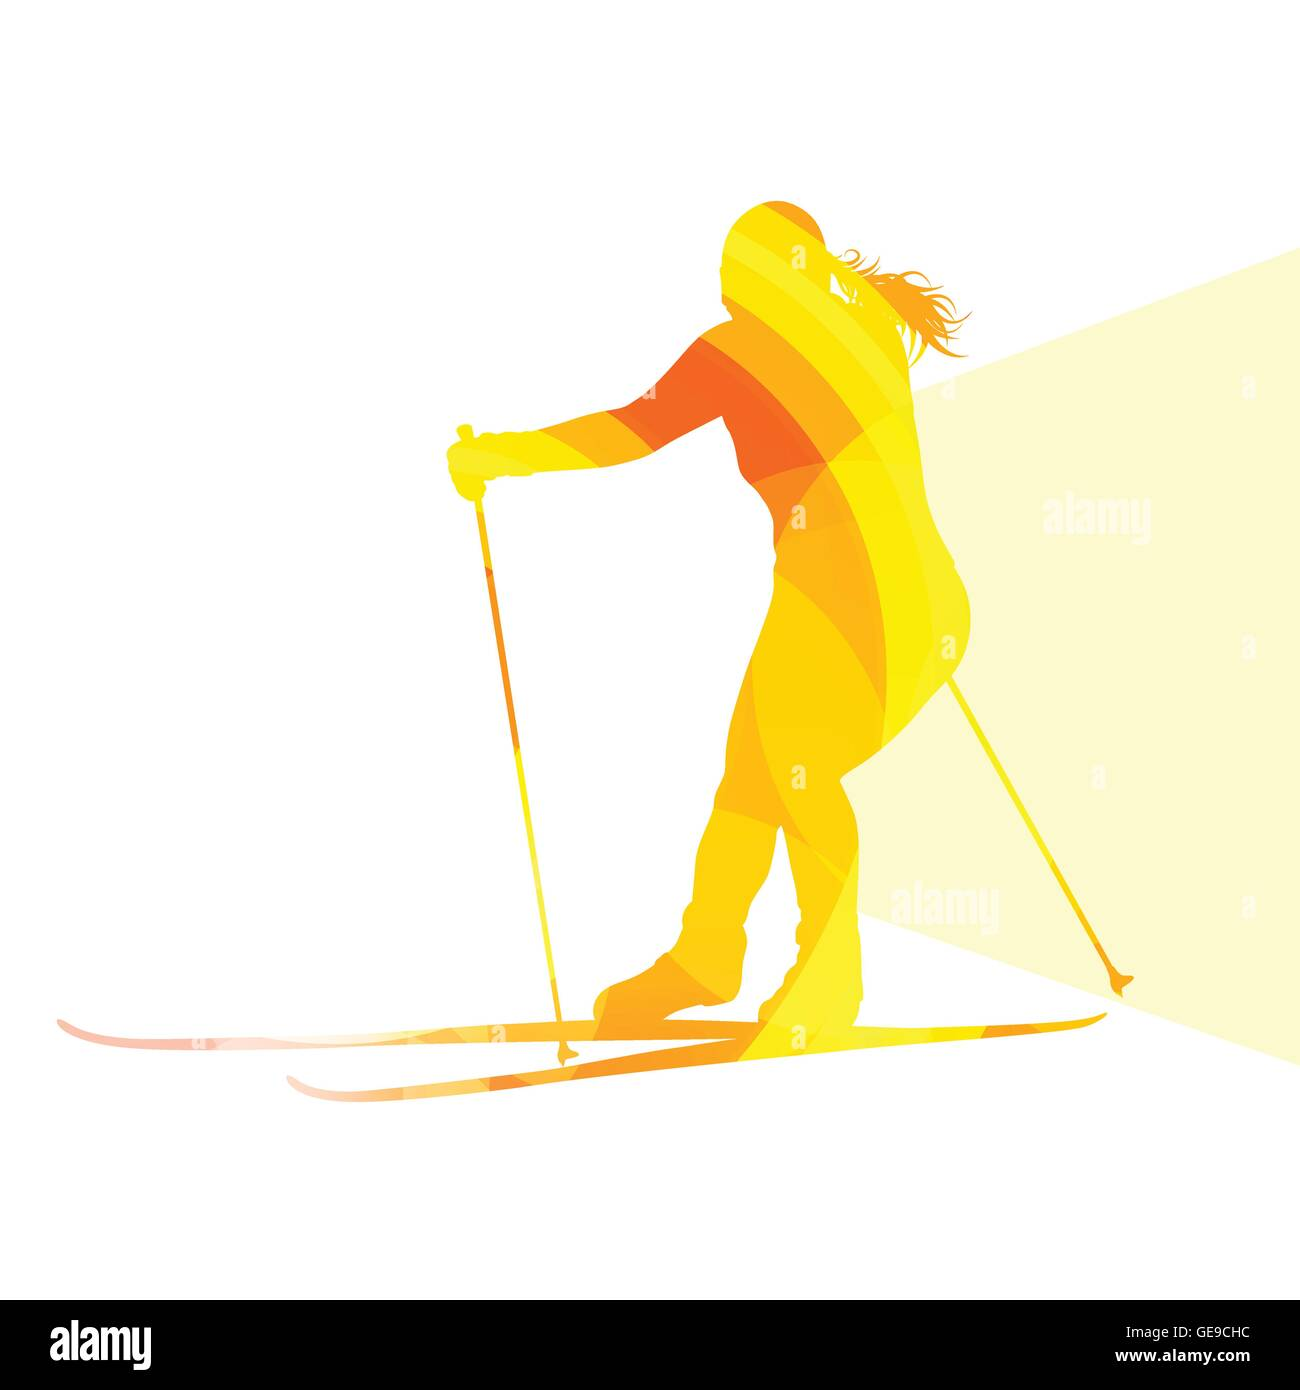 Woman on ski silhouette illustration vector background colorful concept made of transparent curved shapes - Stock Vector